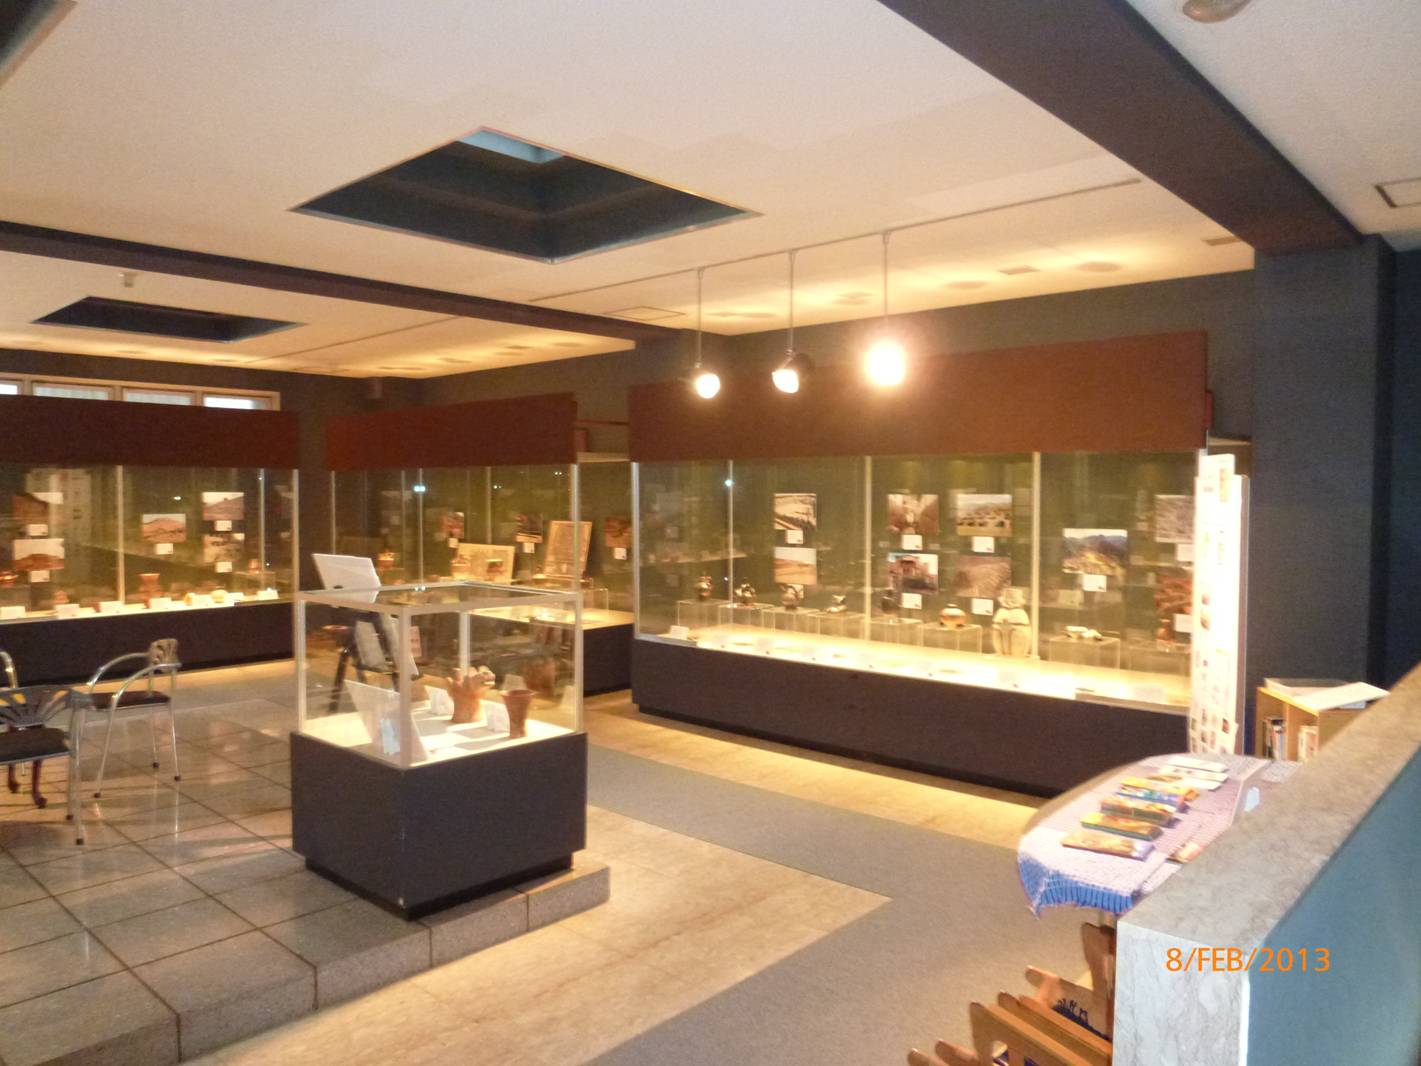 Many archaeological pieces in the Latin American Museum of Bizen